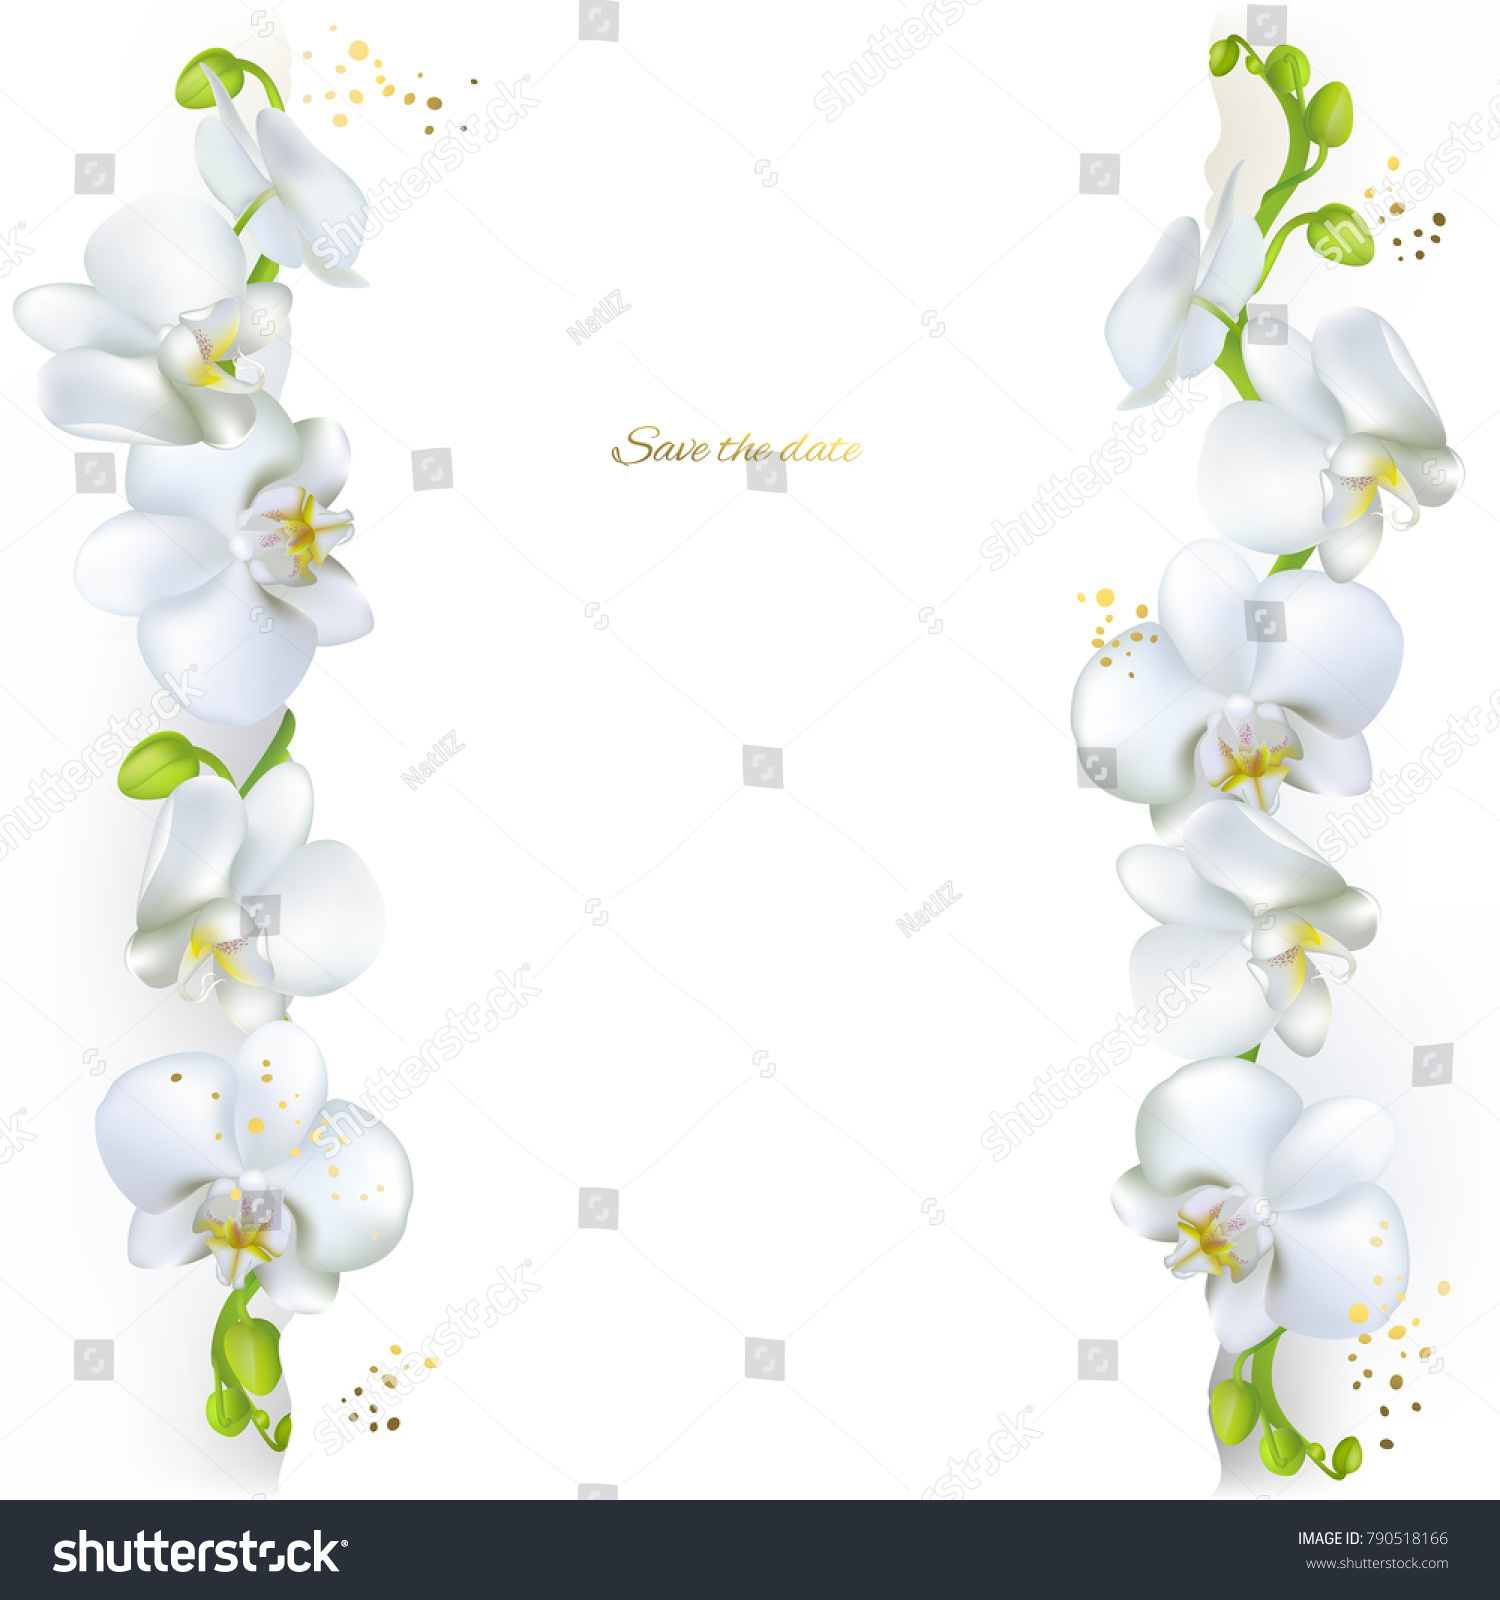 Orchids white flowers tropical plants floral stock vector royalty white flowers tropical plants floral background border mightylinksfo